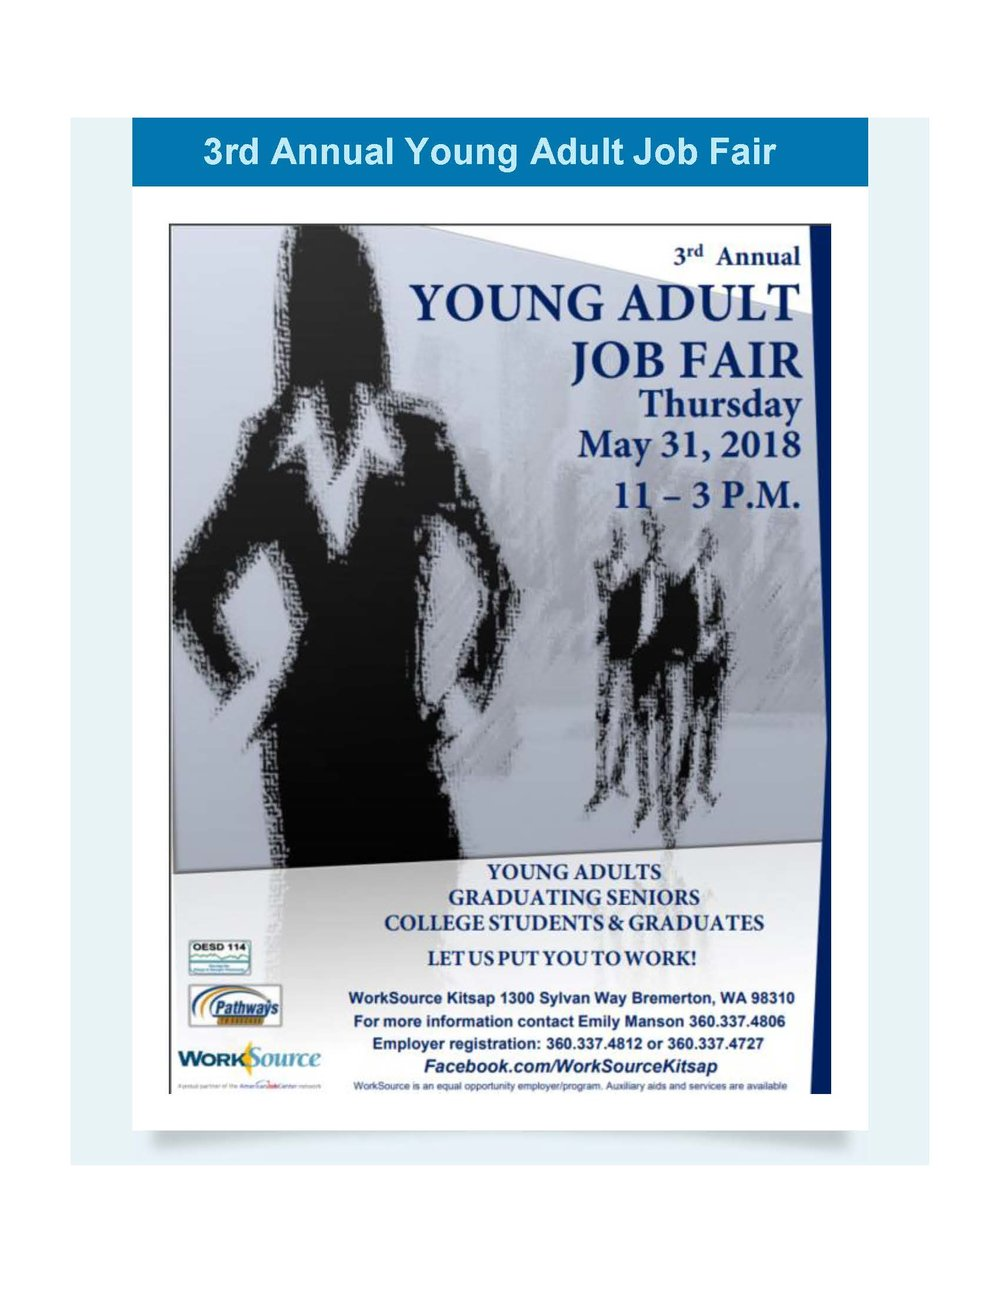 3rd Annual Young Adult Job Fair_Page_1.jpg